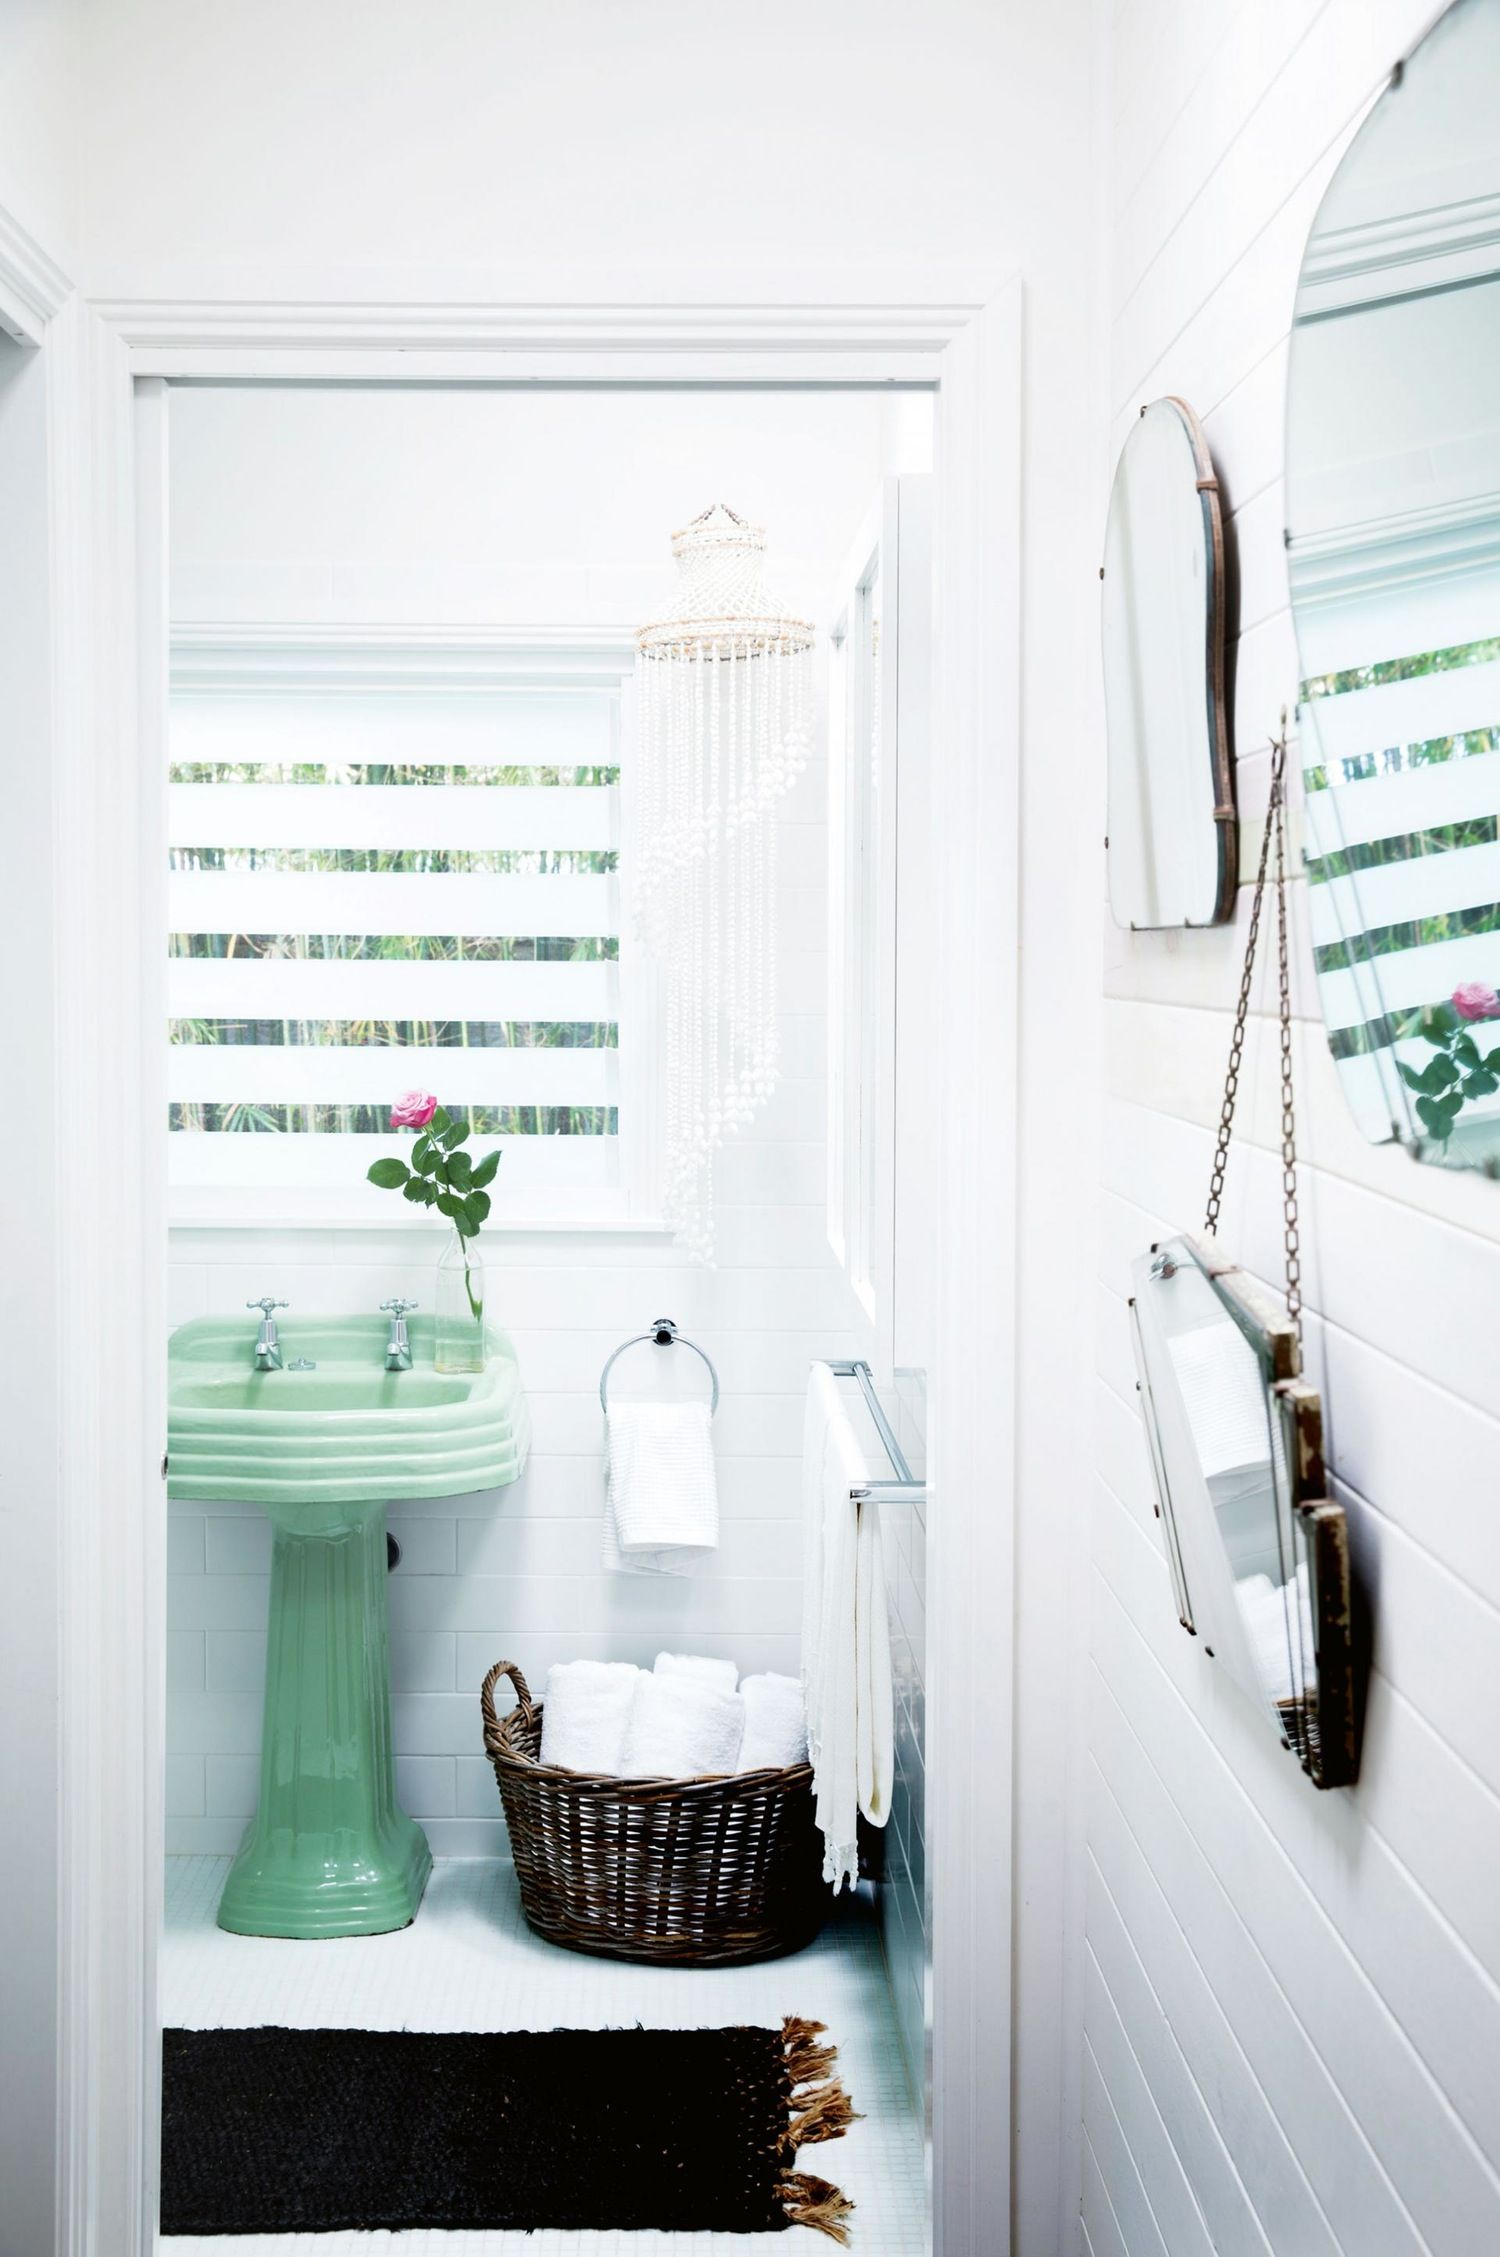 7 Modern Bathrooms with Colorful Vintage Fixtures | Pinterest ...